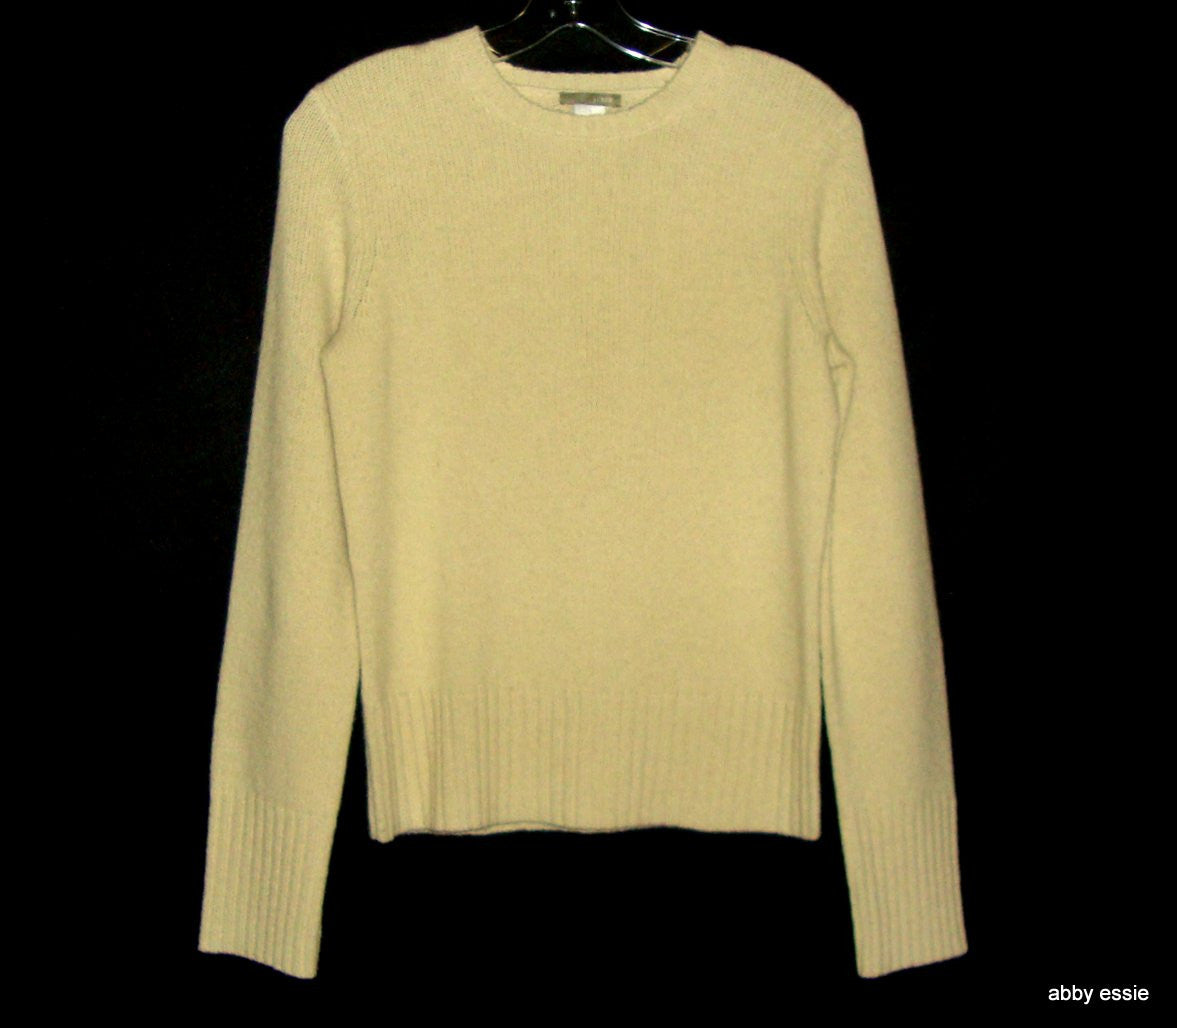 J CREW TAN WOOL CREWNECK vintage style SWEATER SMALL [4 5 6 ] 100% WOOL